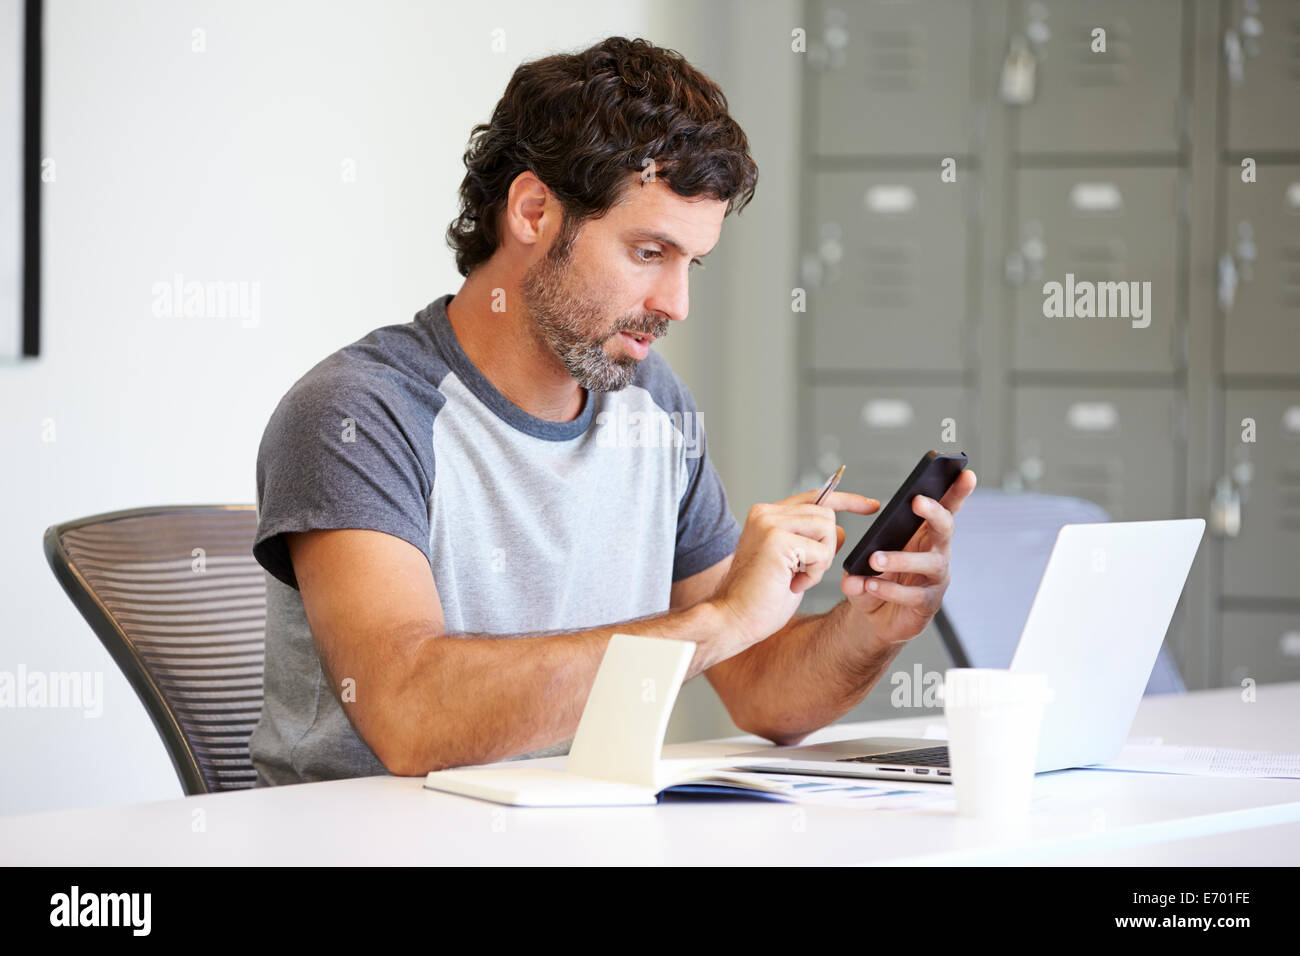 Casually Dressed Man Using Mobile Phone In Design Studio Stock Photo